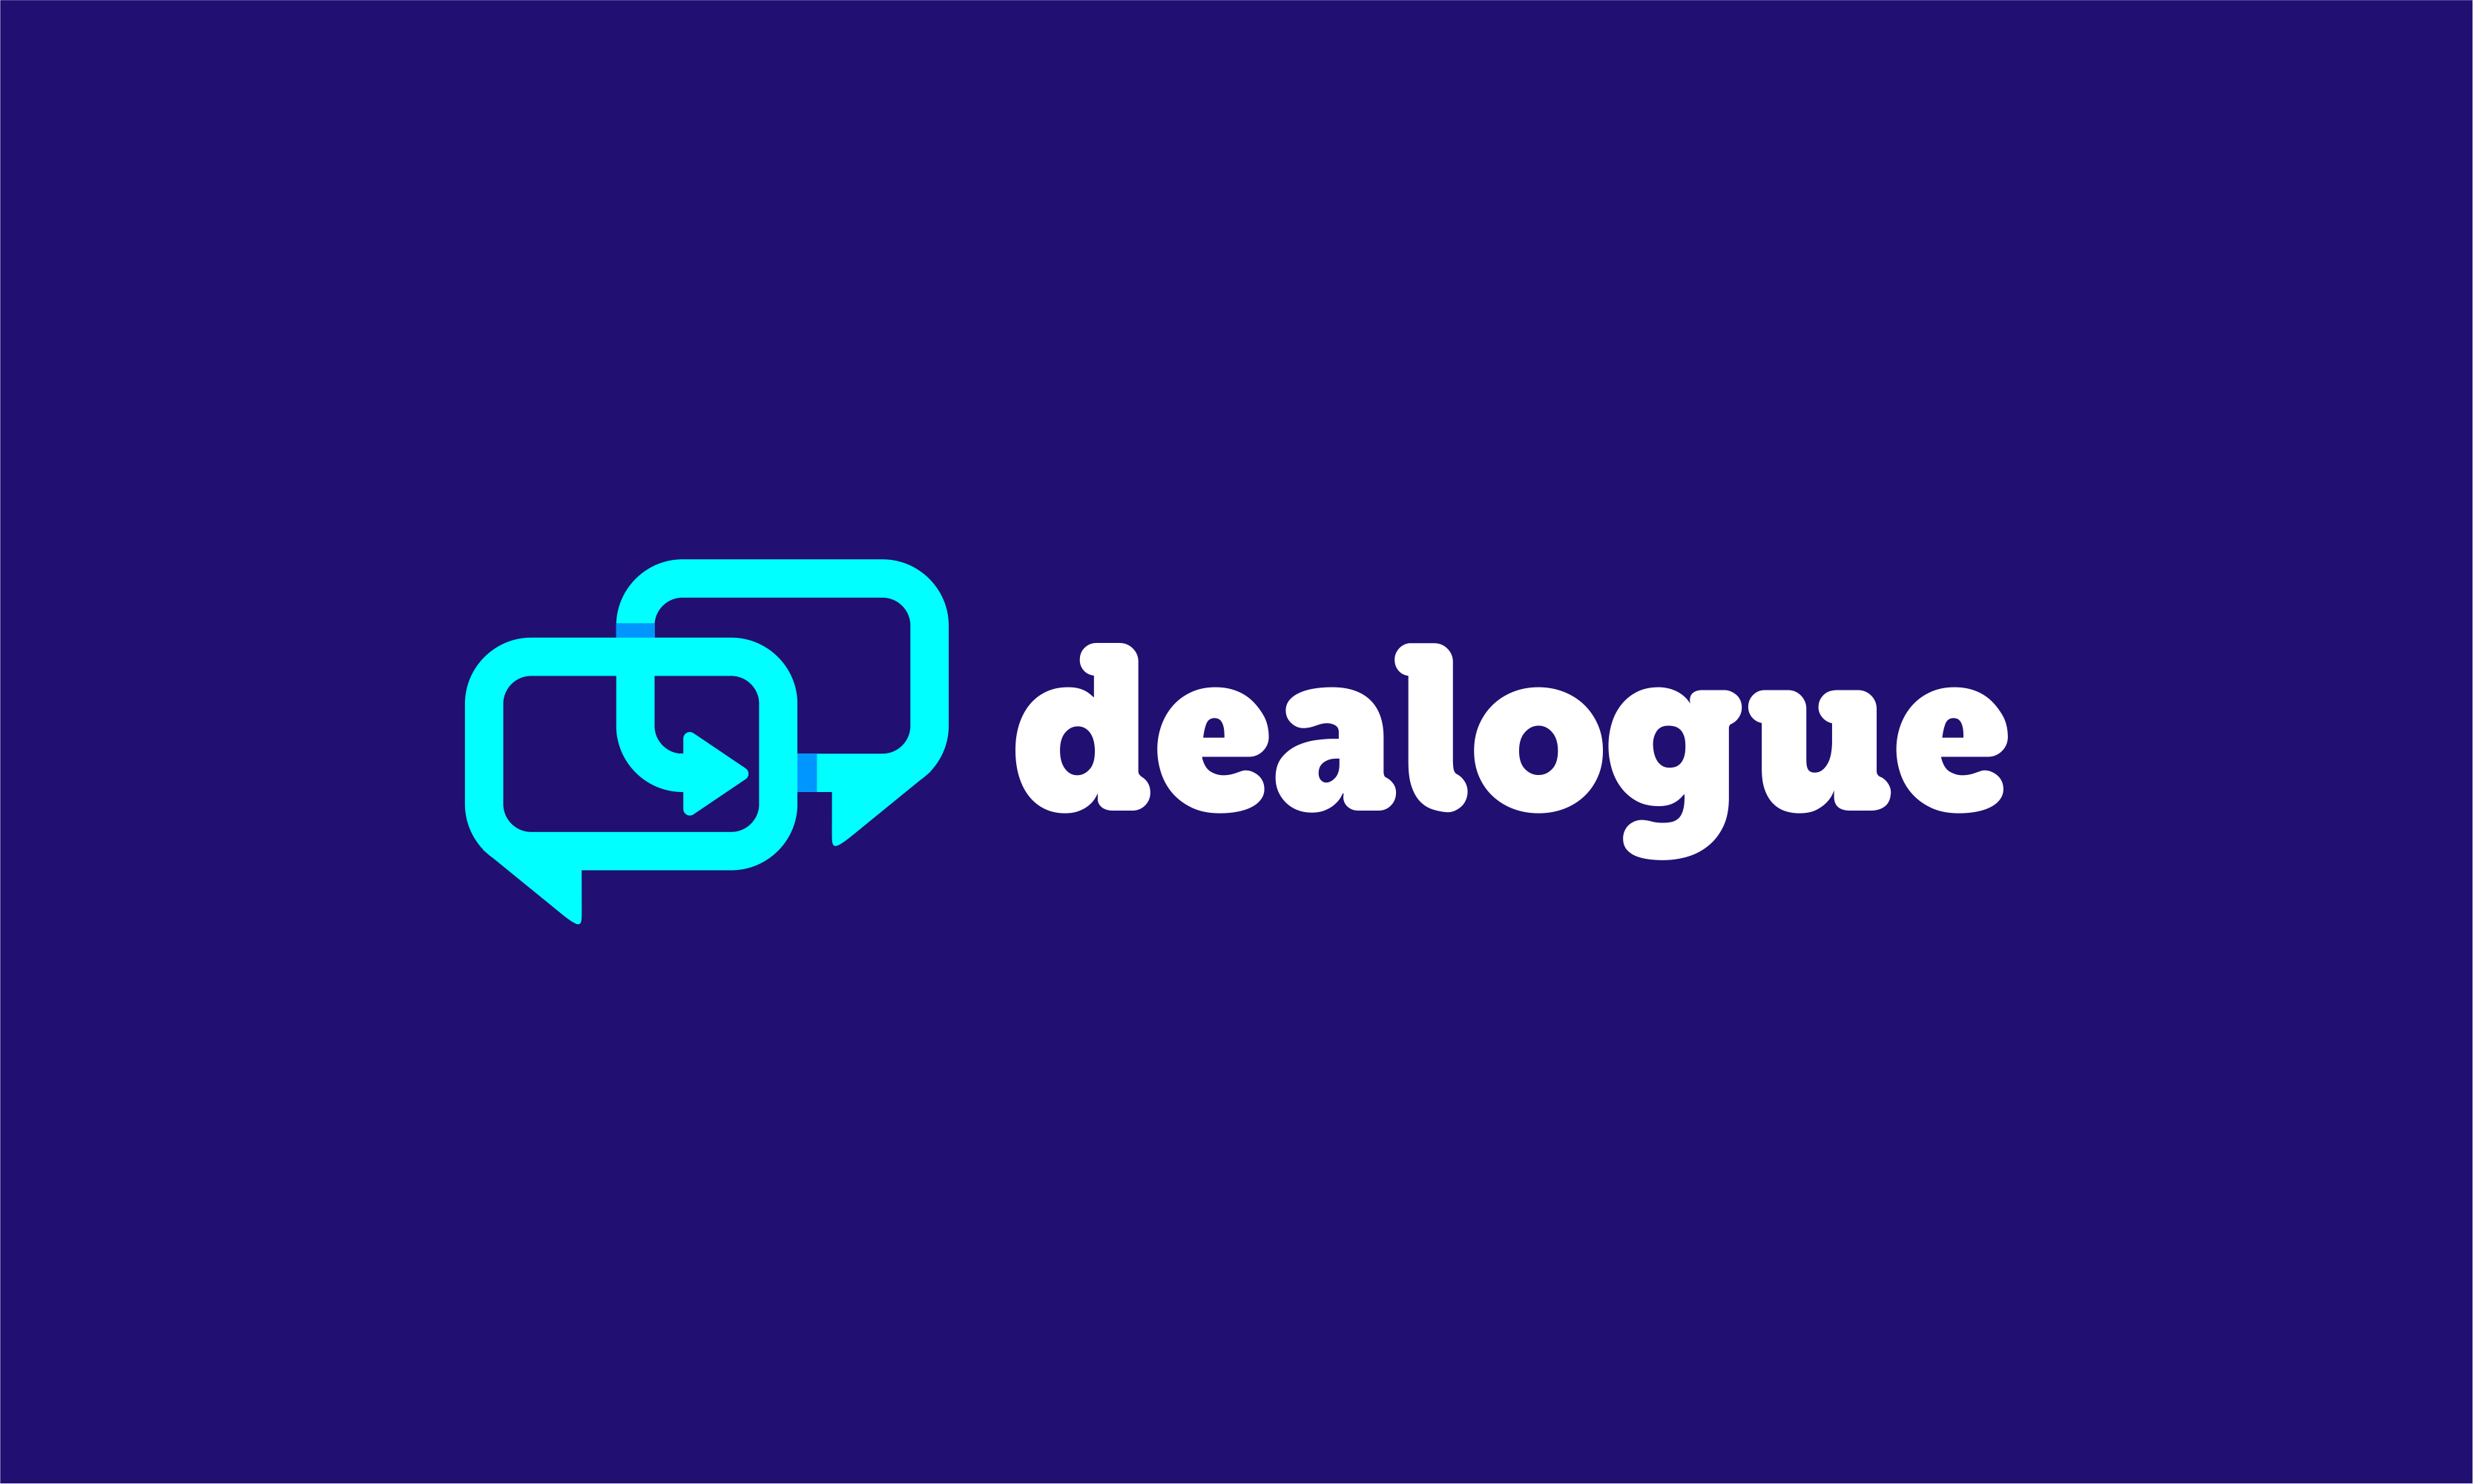 Dealogue